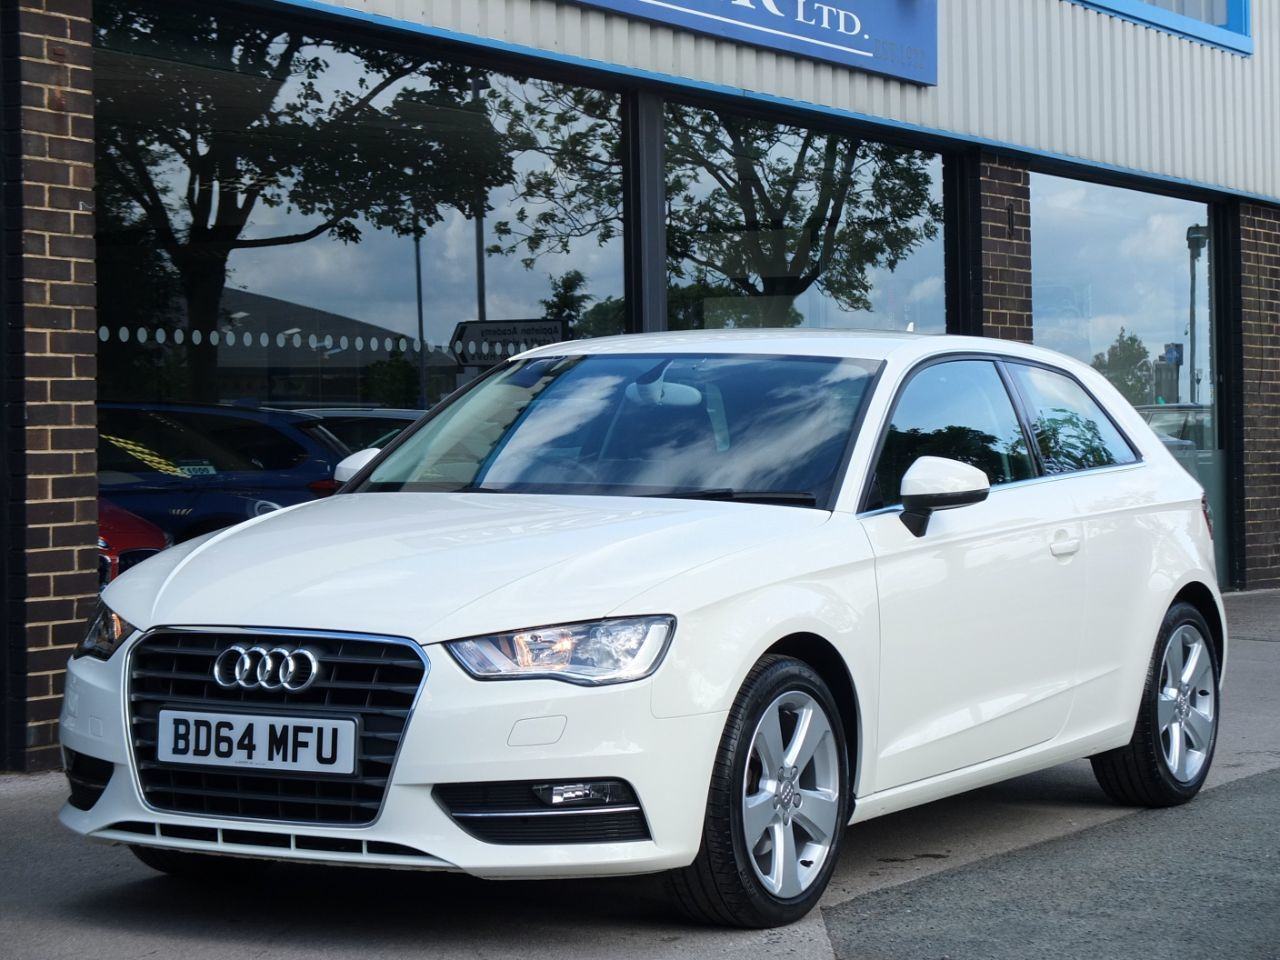 Audi A3 1.2 TFSI Sport 110ps 3 door Hatchback Petrol Amalfi White